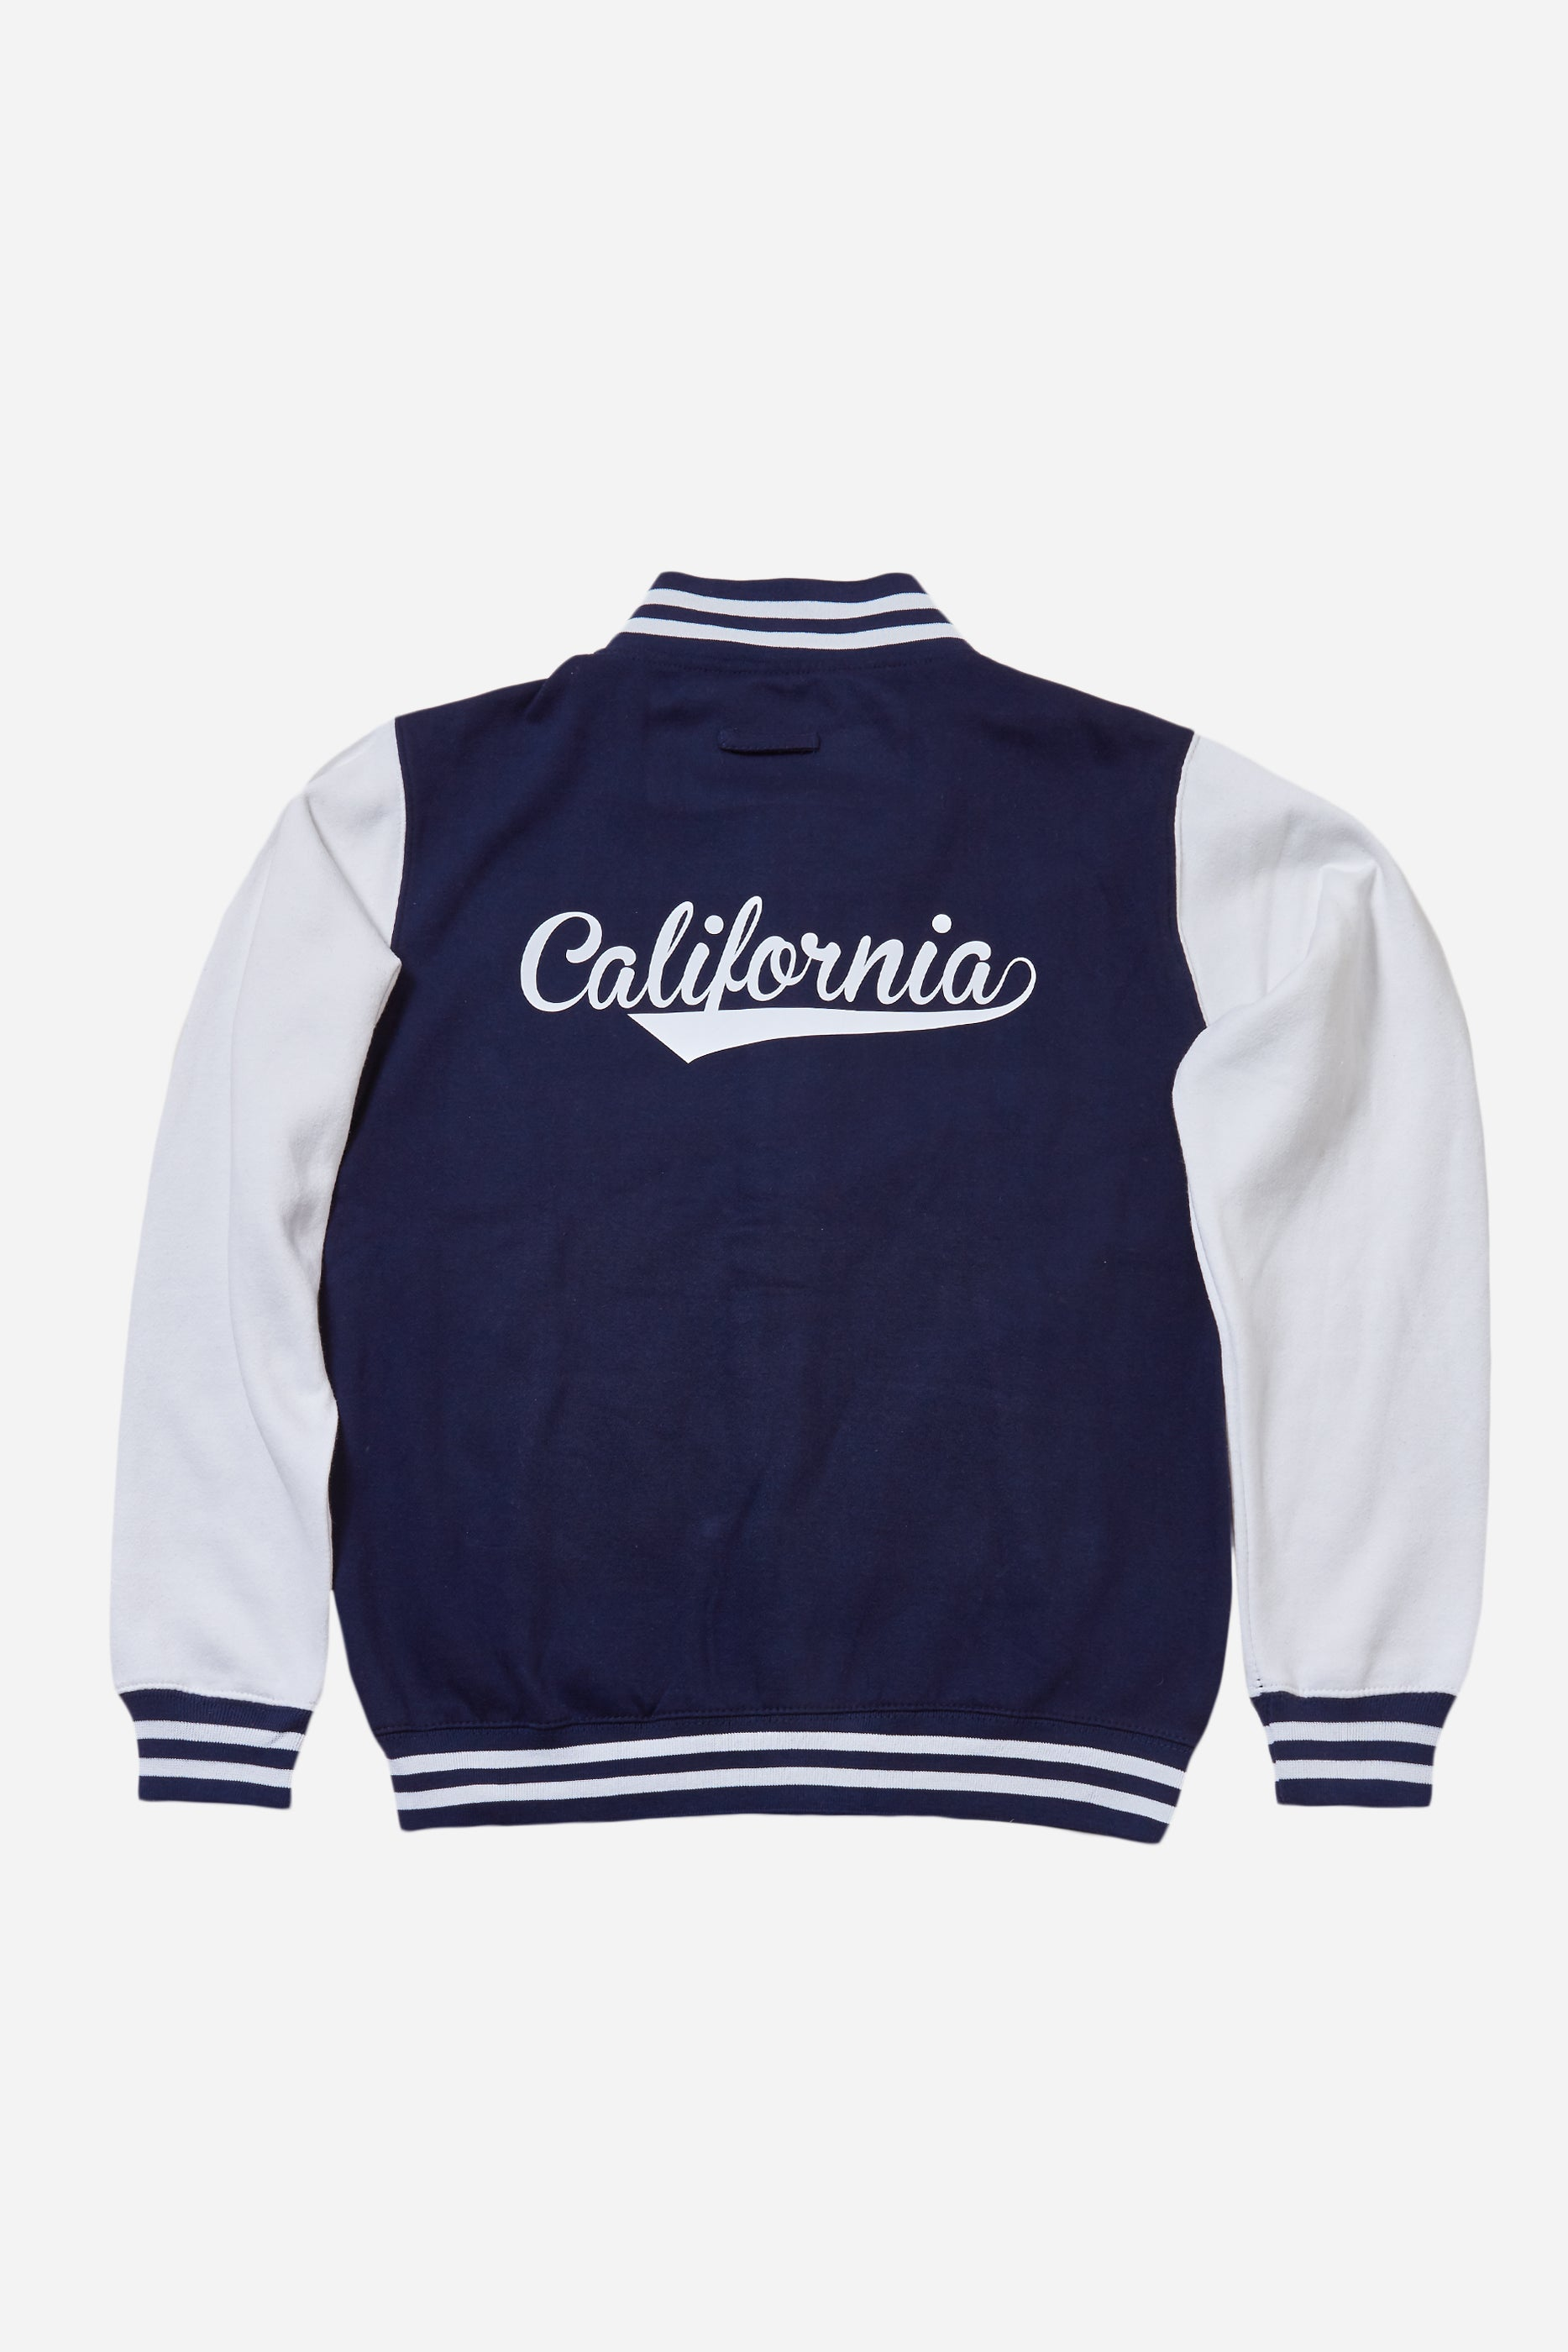 California Varsity Jacket